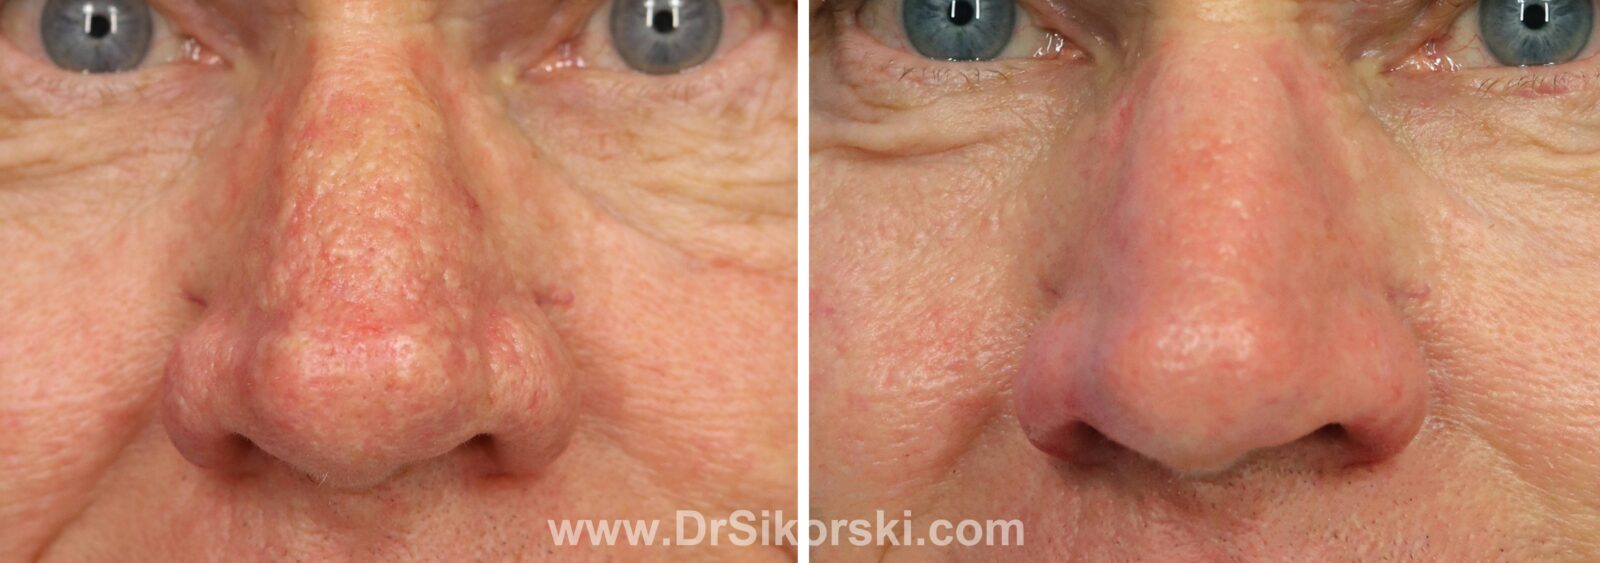 Rhinophyma Before and After Patient B